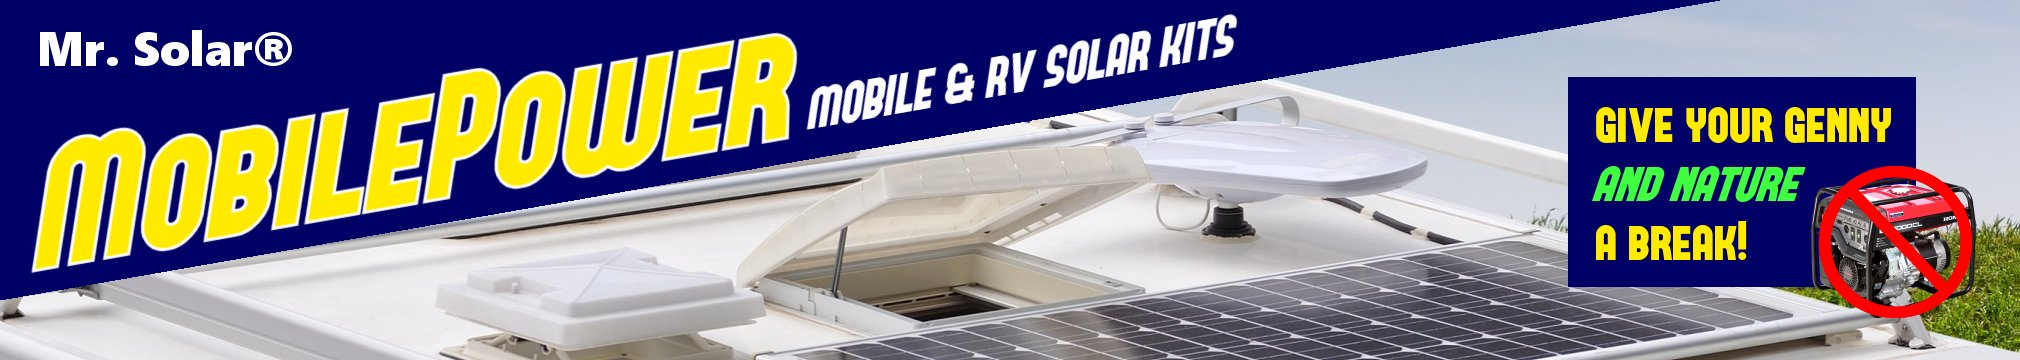 Mr. Solar® is your RV solar headquarters!